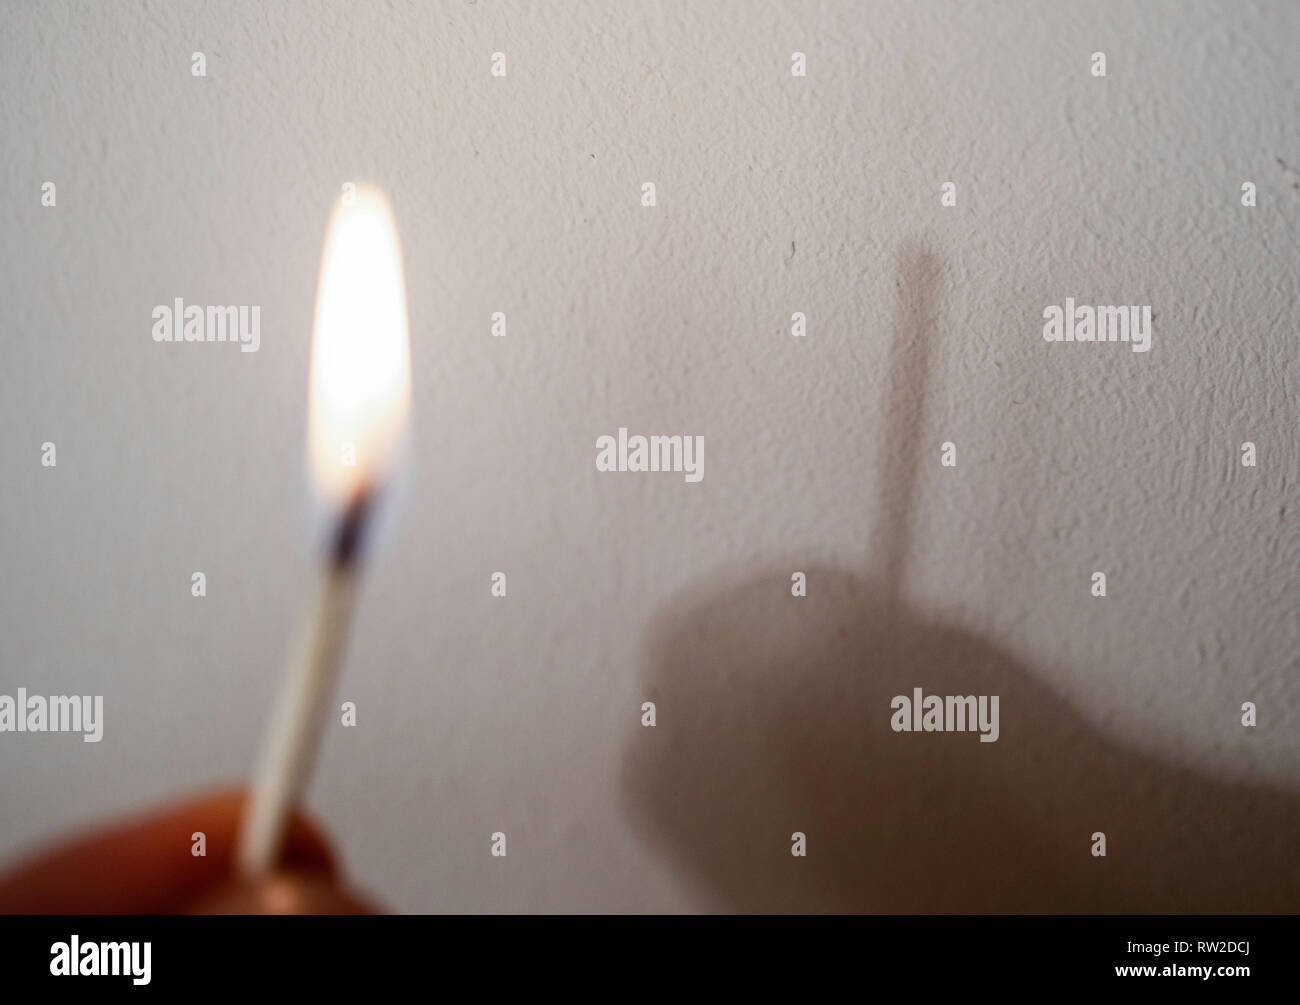 Fire match not throwing a shadow. Play of light and shade Experiment - optical illusion. - Stock Image